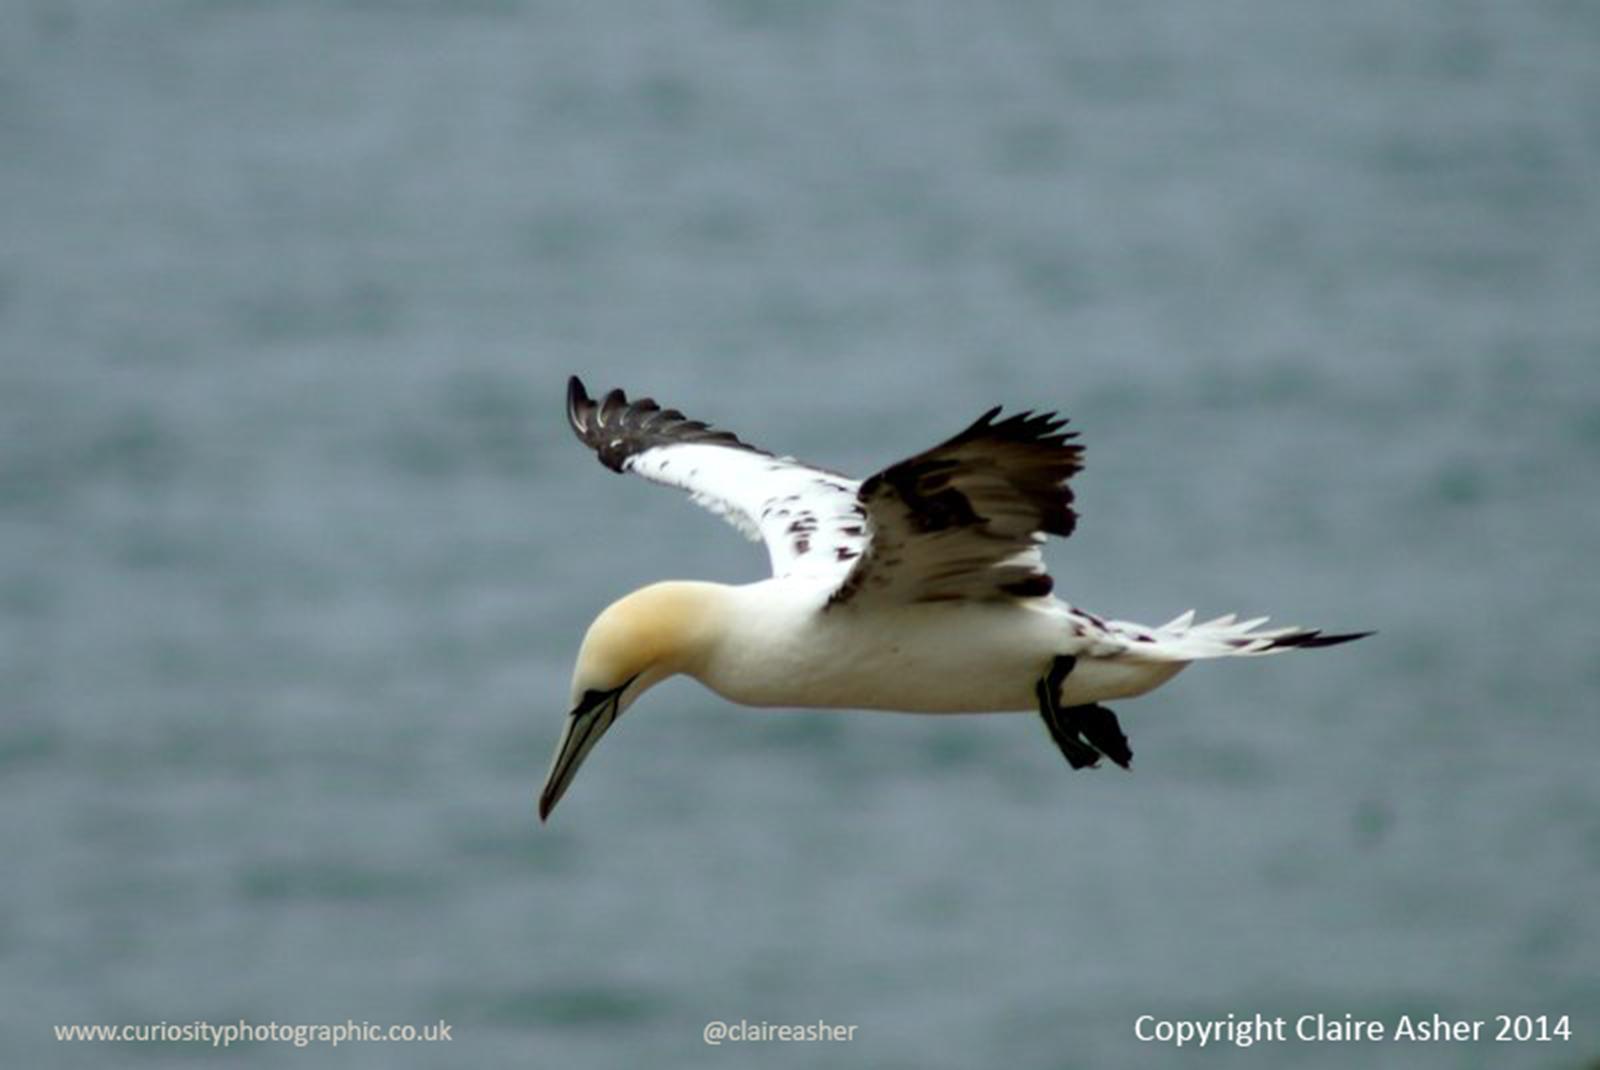 A Gannet (Morus bassanus) photographed in Yorkshire, England in 2013.